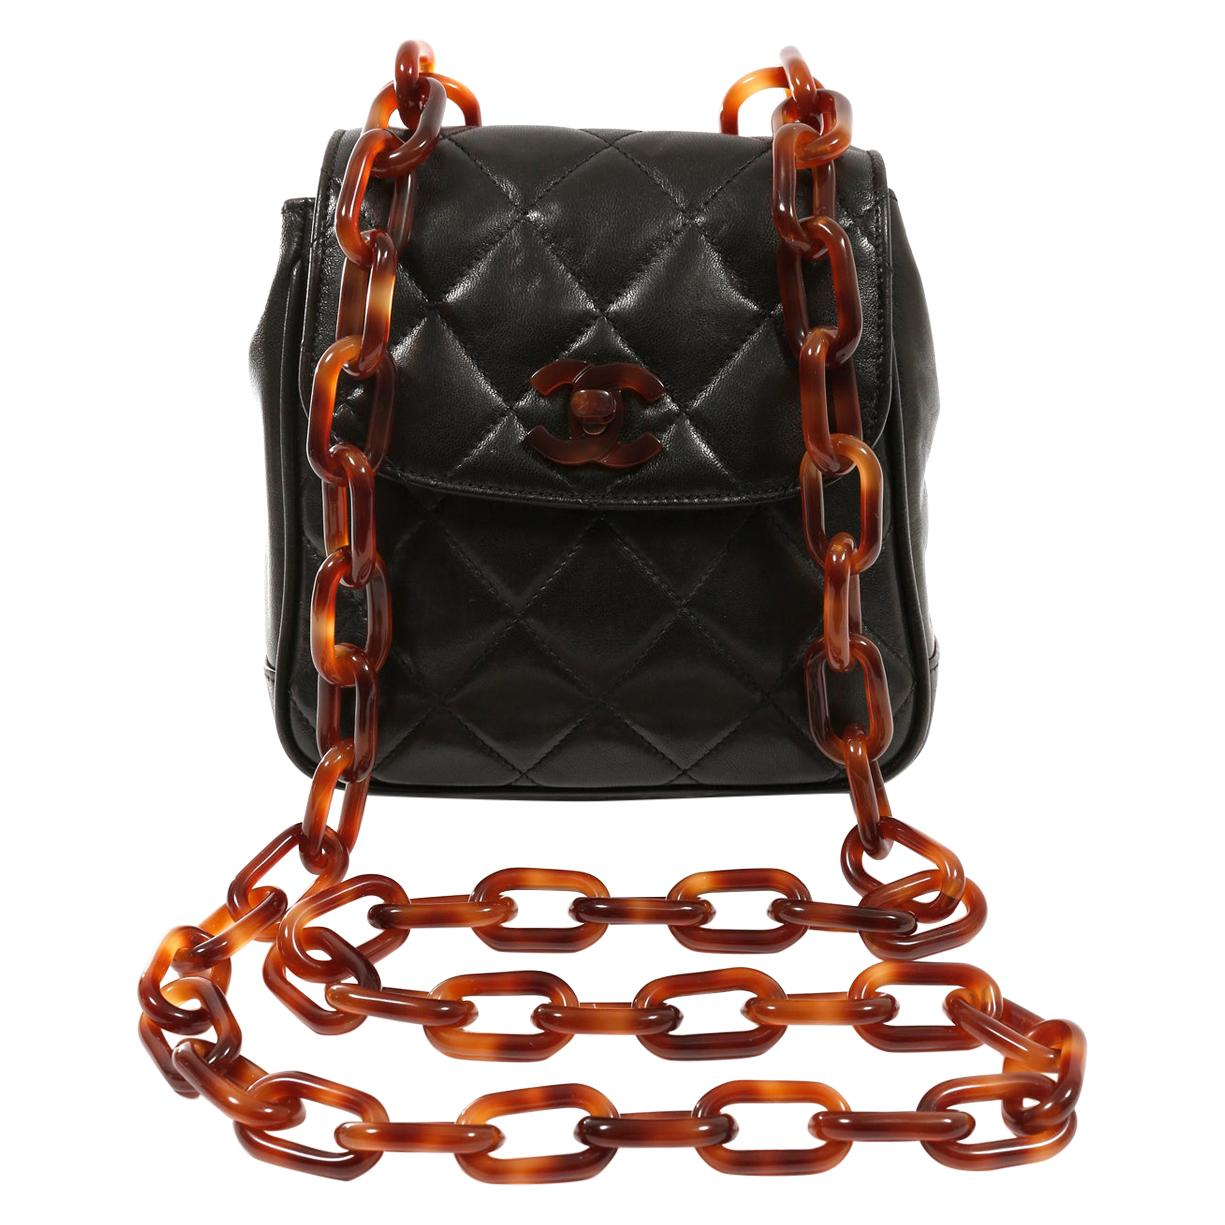 Chanel Black Leather Crossbody Bag with Resin Tortoise Chain Strap